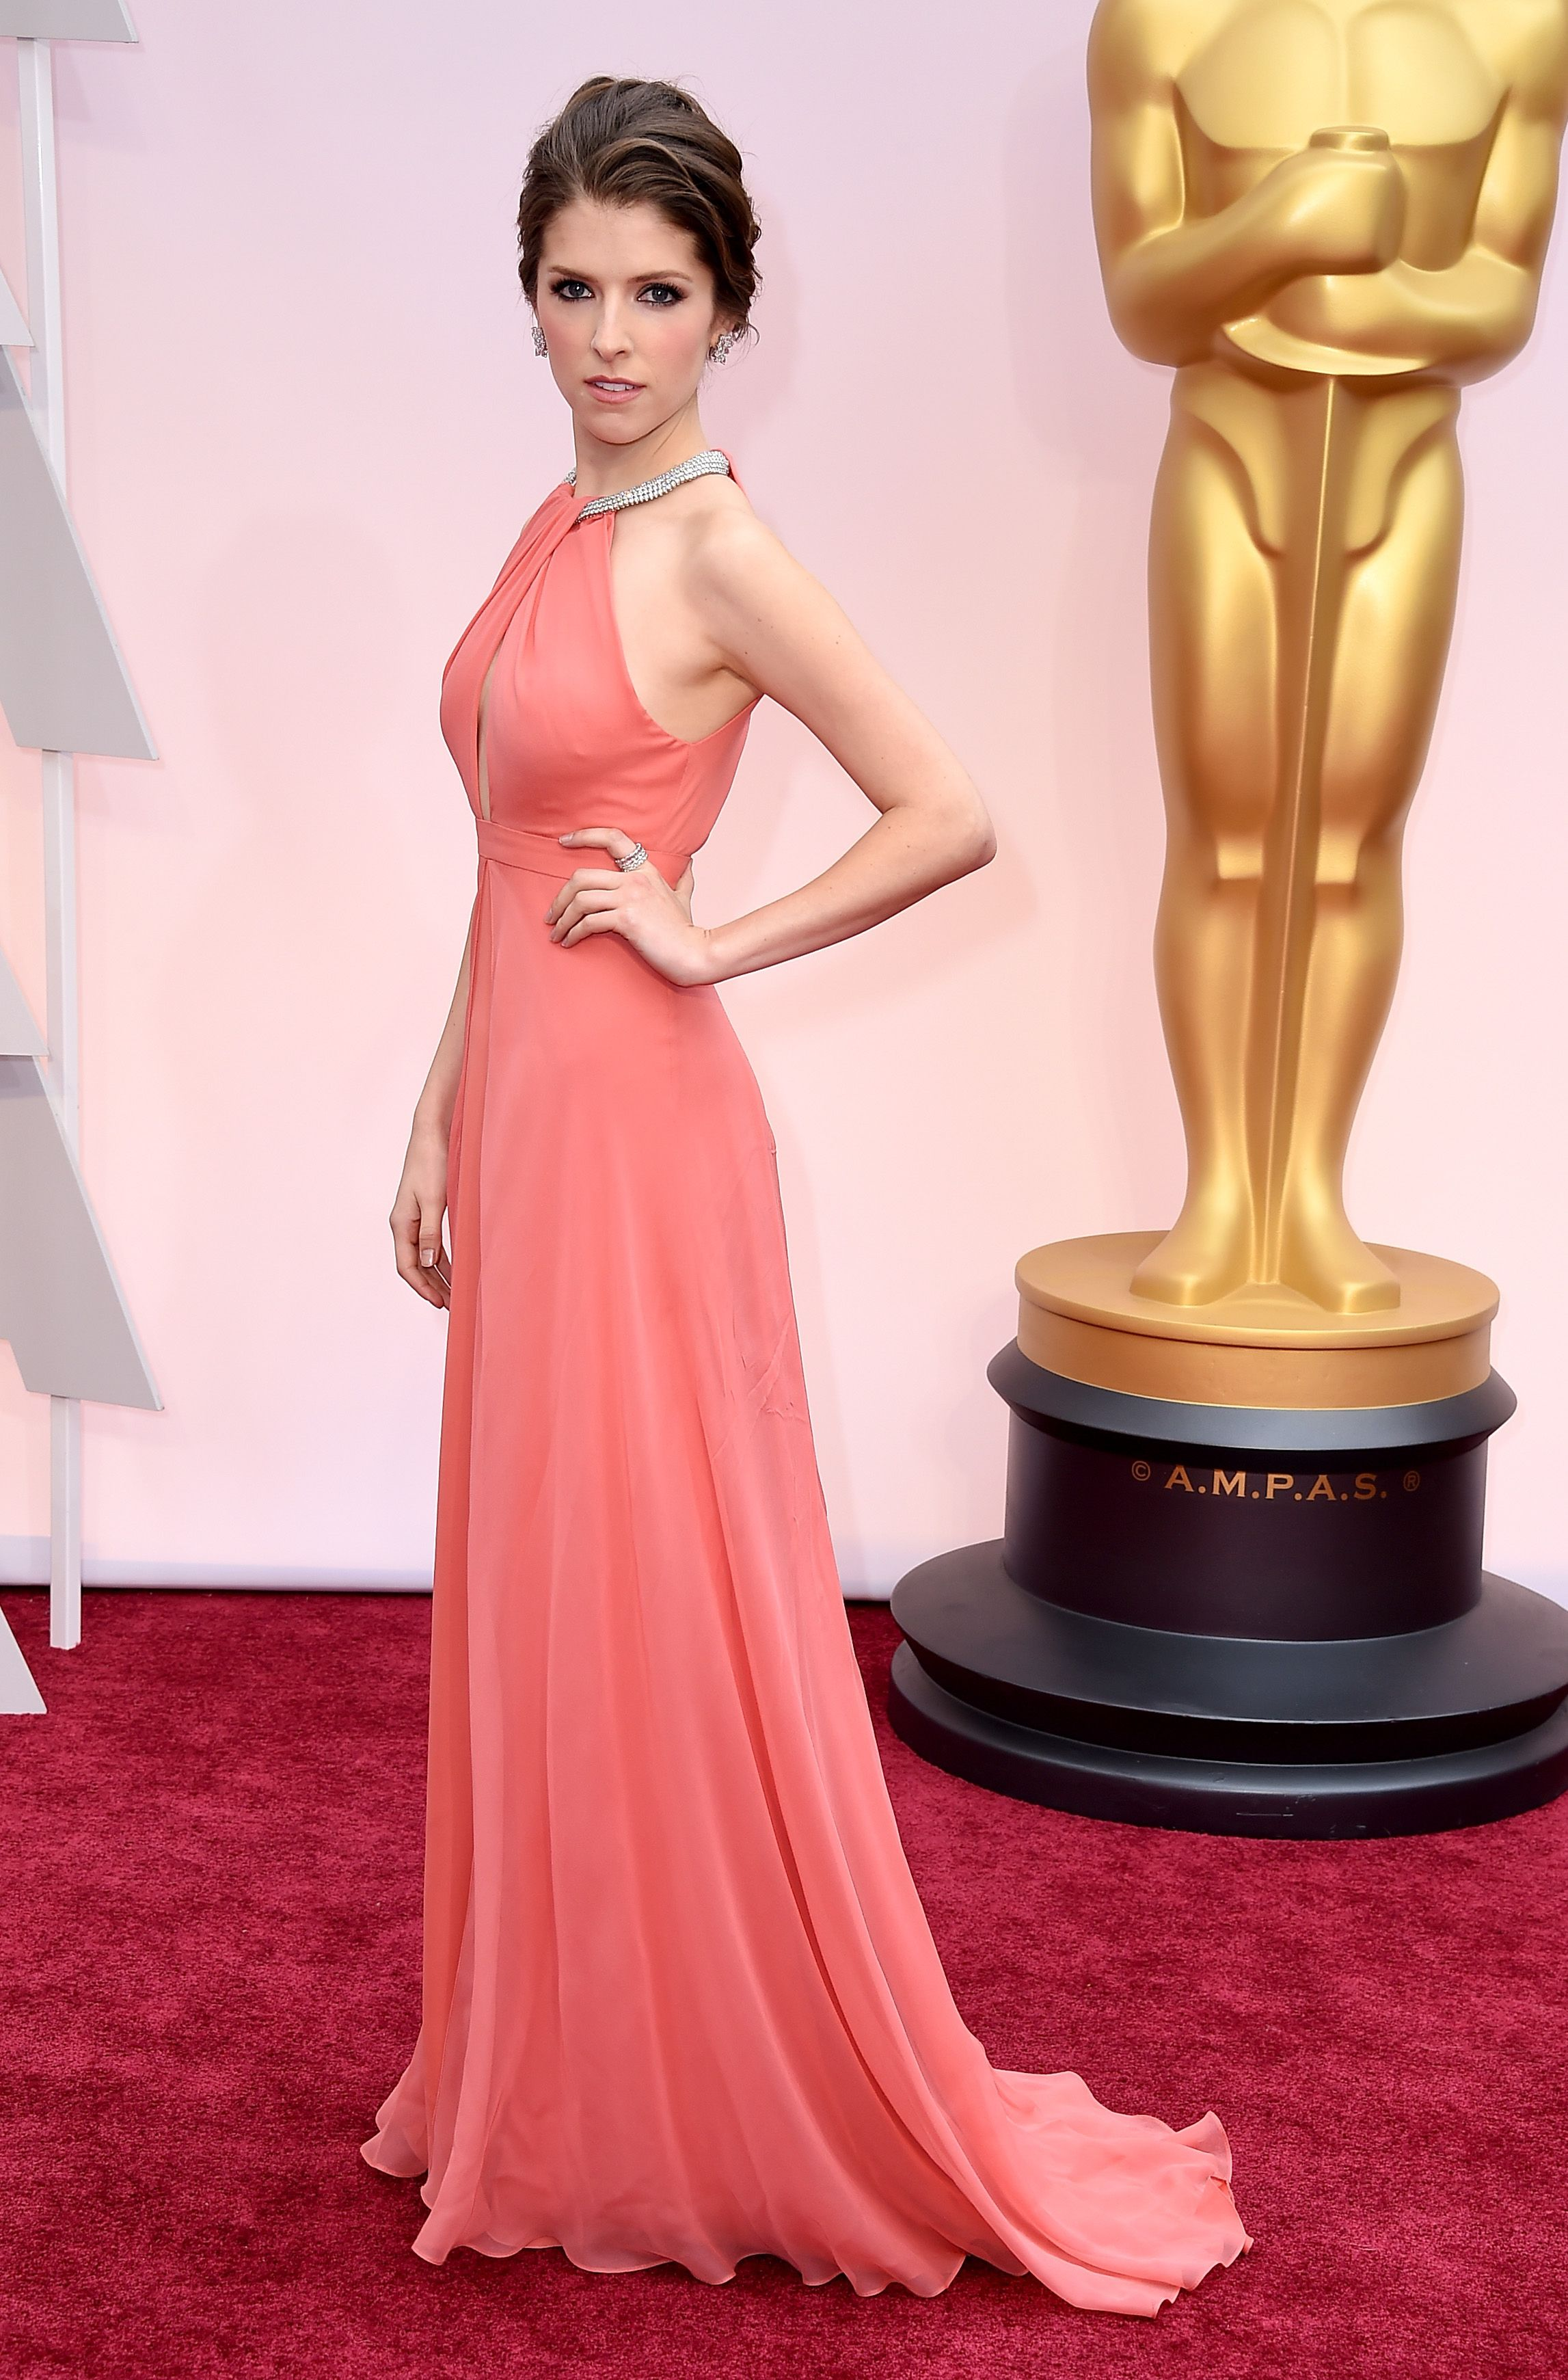 All The Looks From the 87th Annual Academy Awards | Vestidos de ...